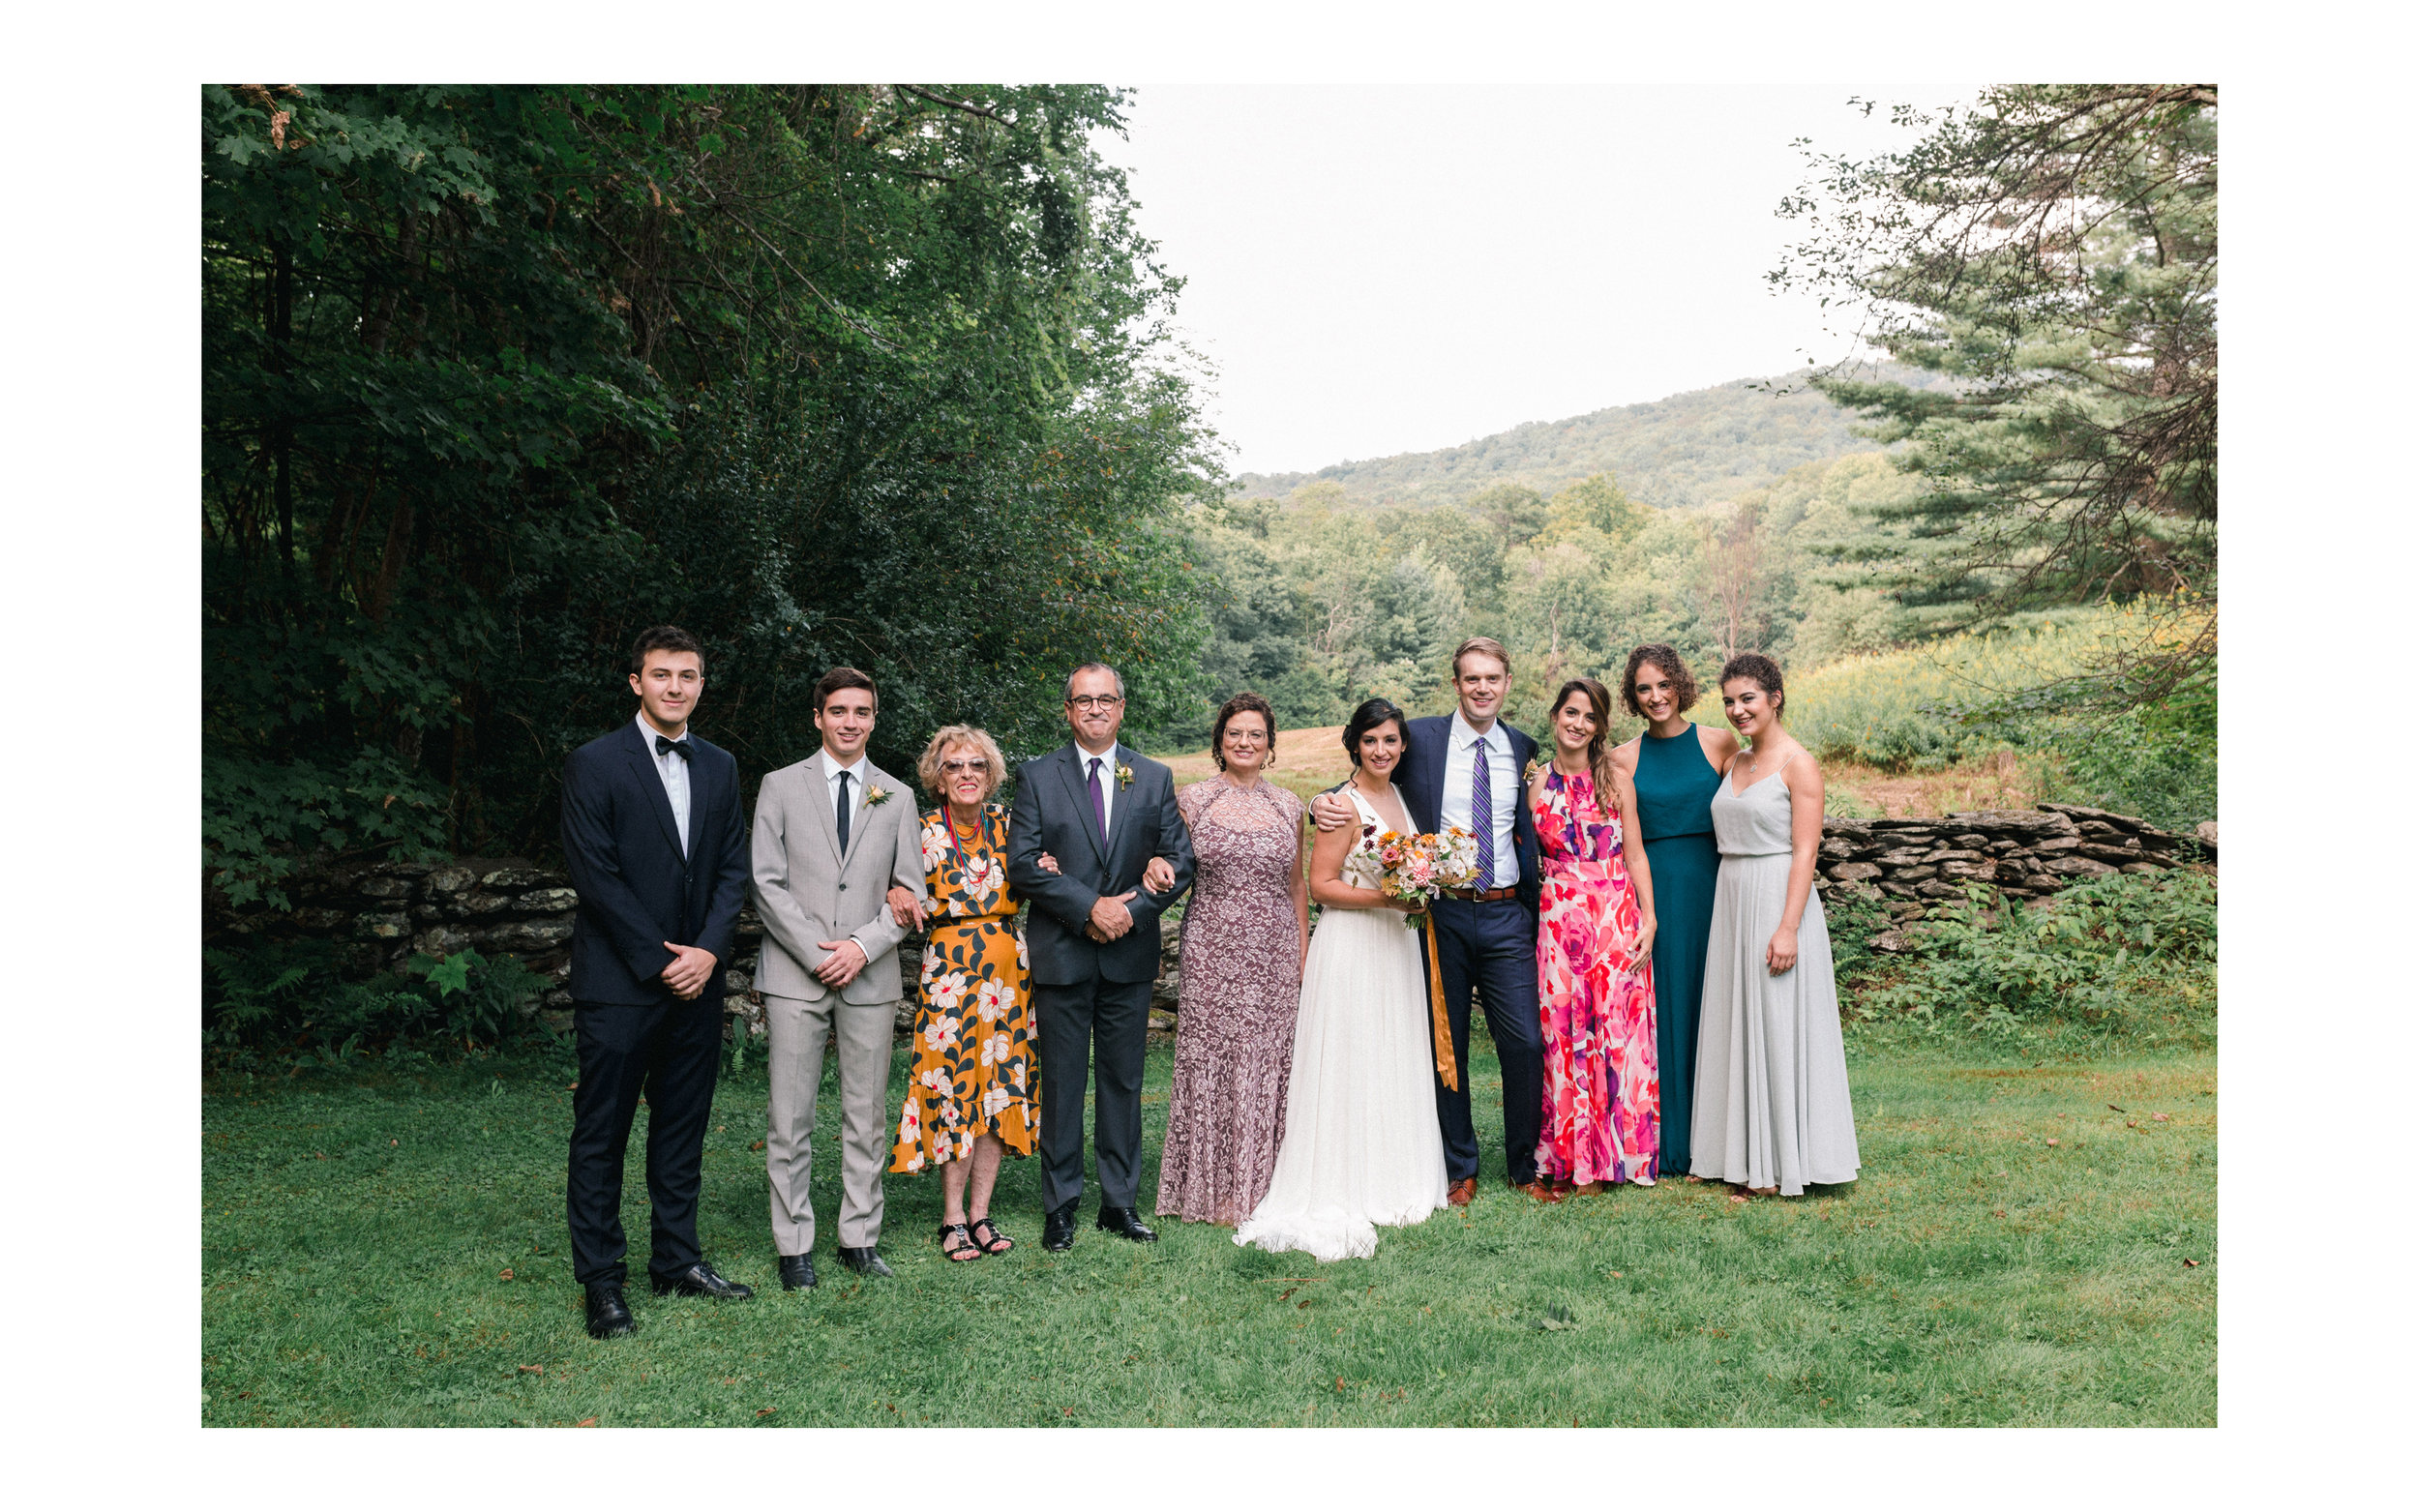 Berkshires Wedding Fine Art Wedding Photographer_Meg Haley Photographs_014.jpg